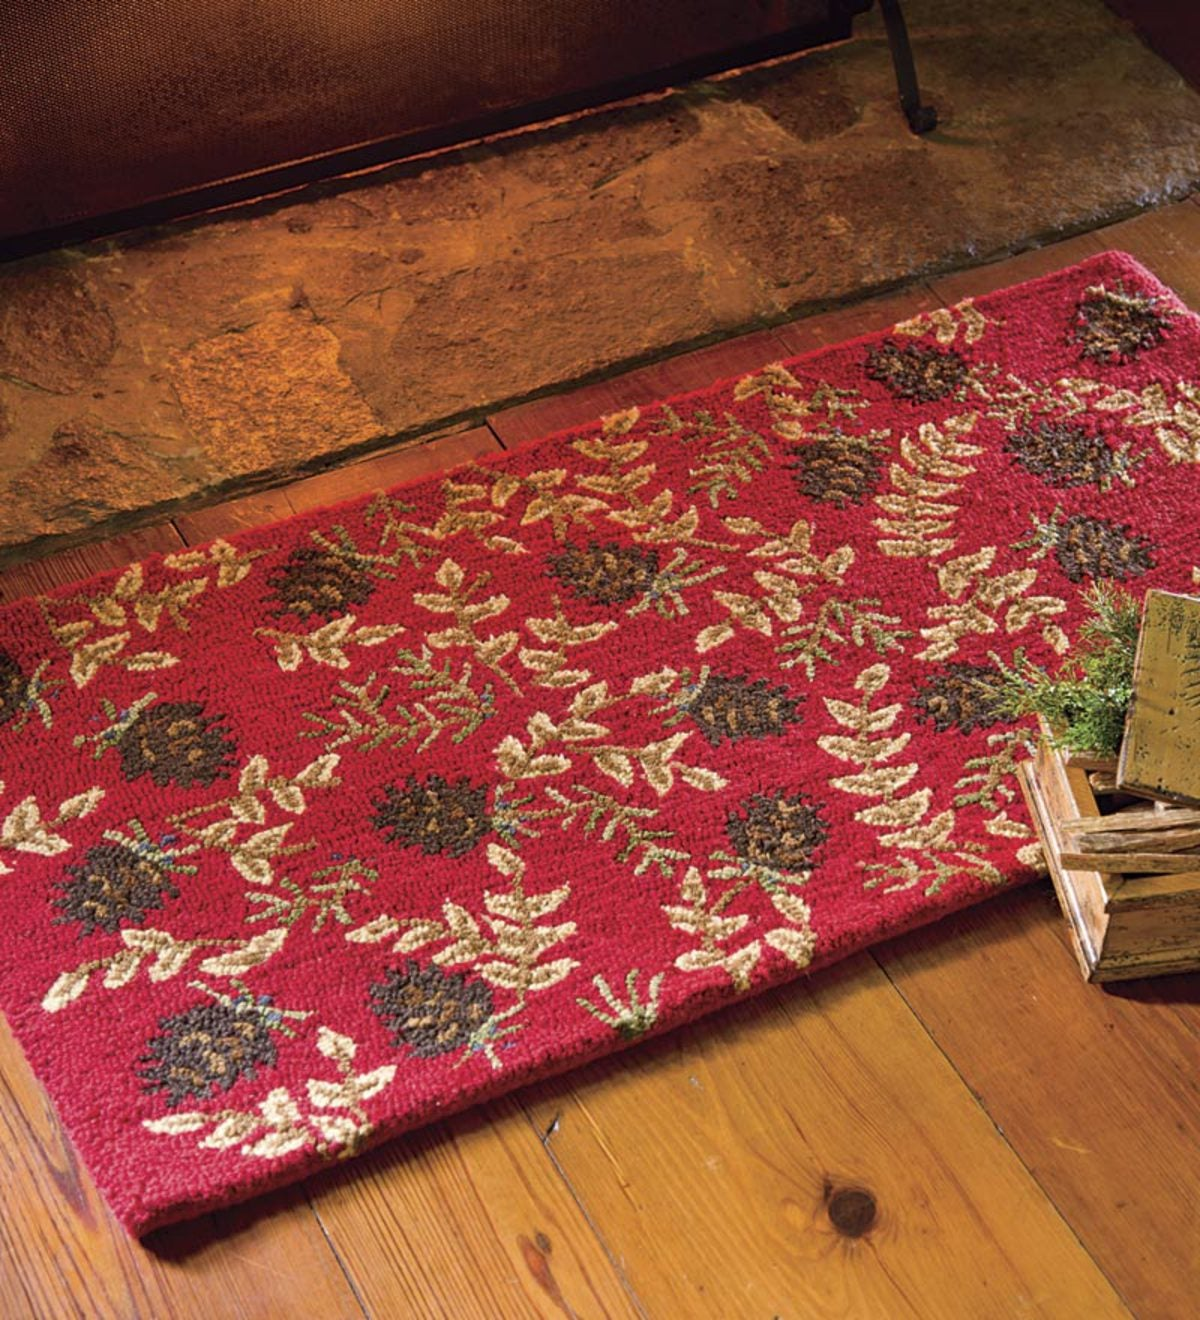 Hand-Hooked Fire-Resistant Ruby Cones Wool Rug